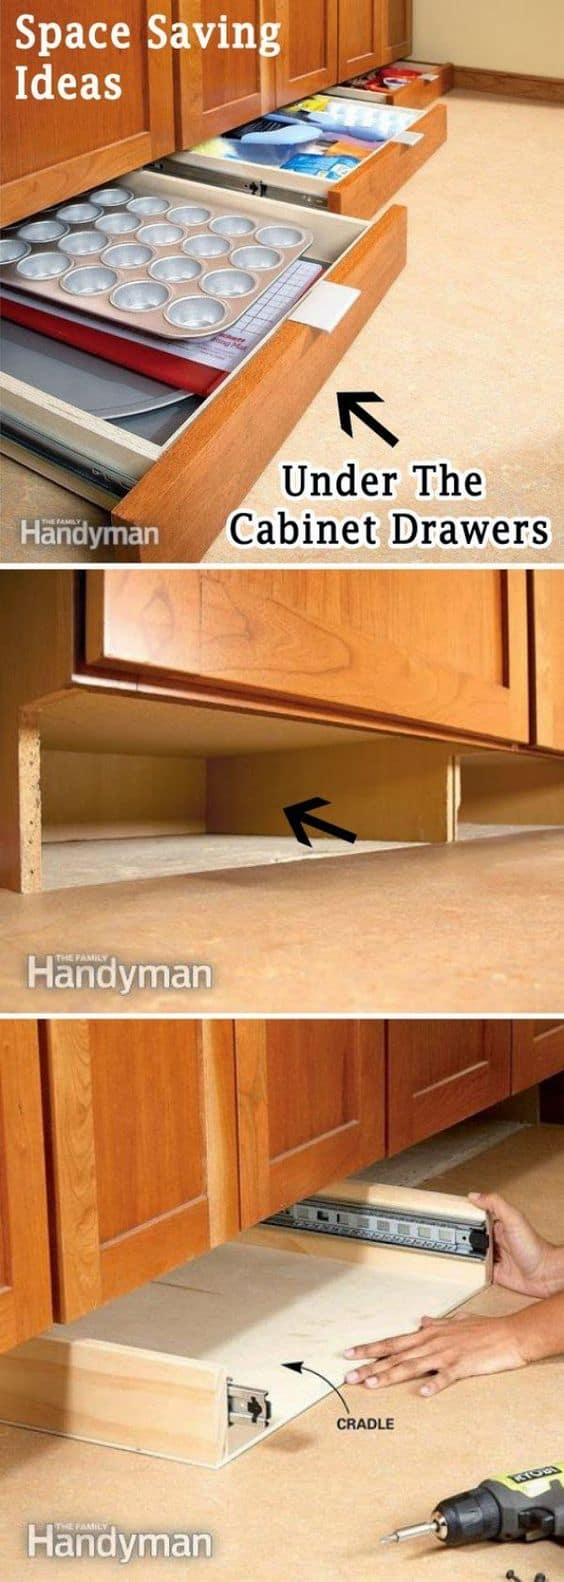 107. ADD MORE STORAGE SPACE ON YOURCABINET